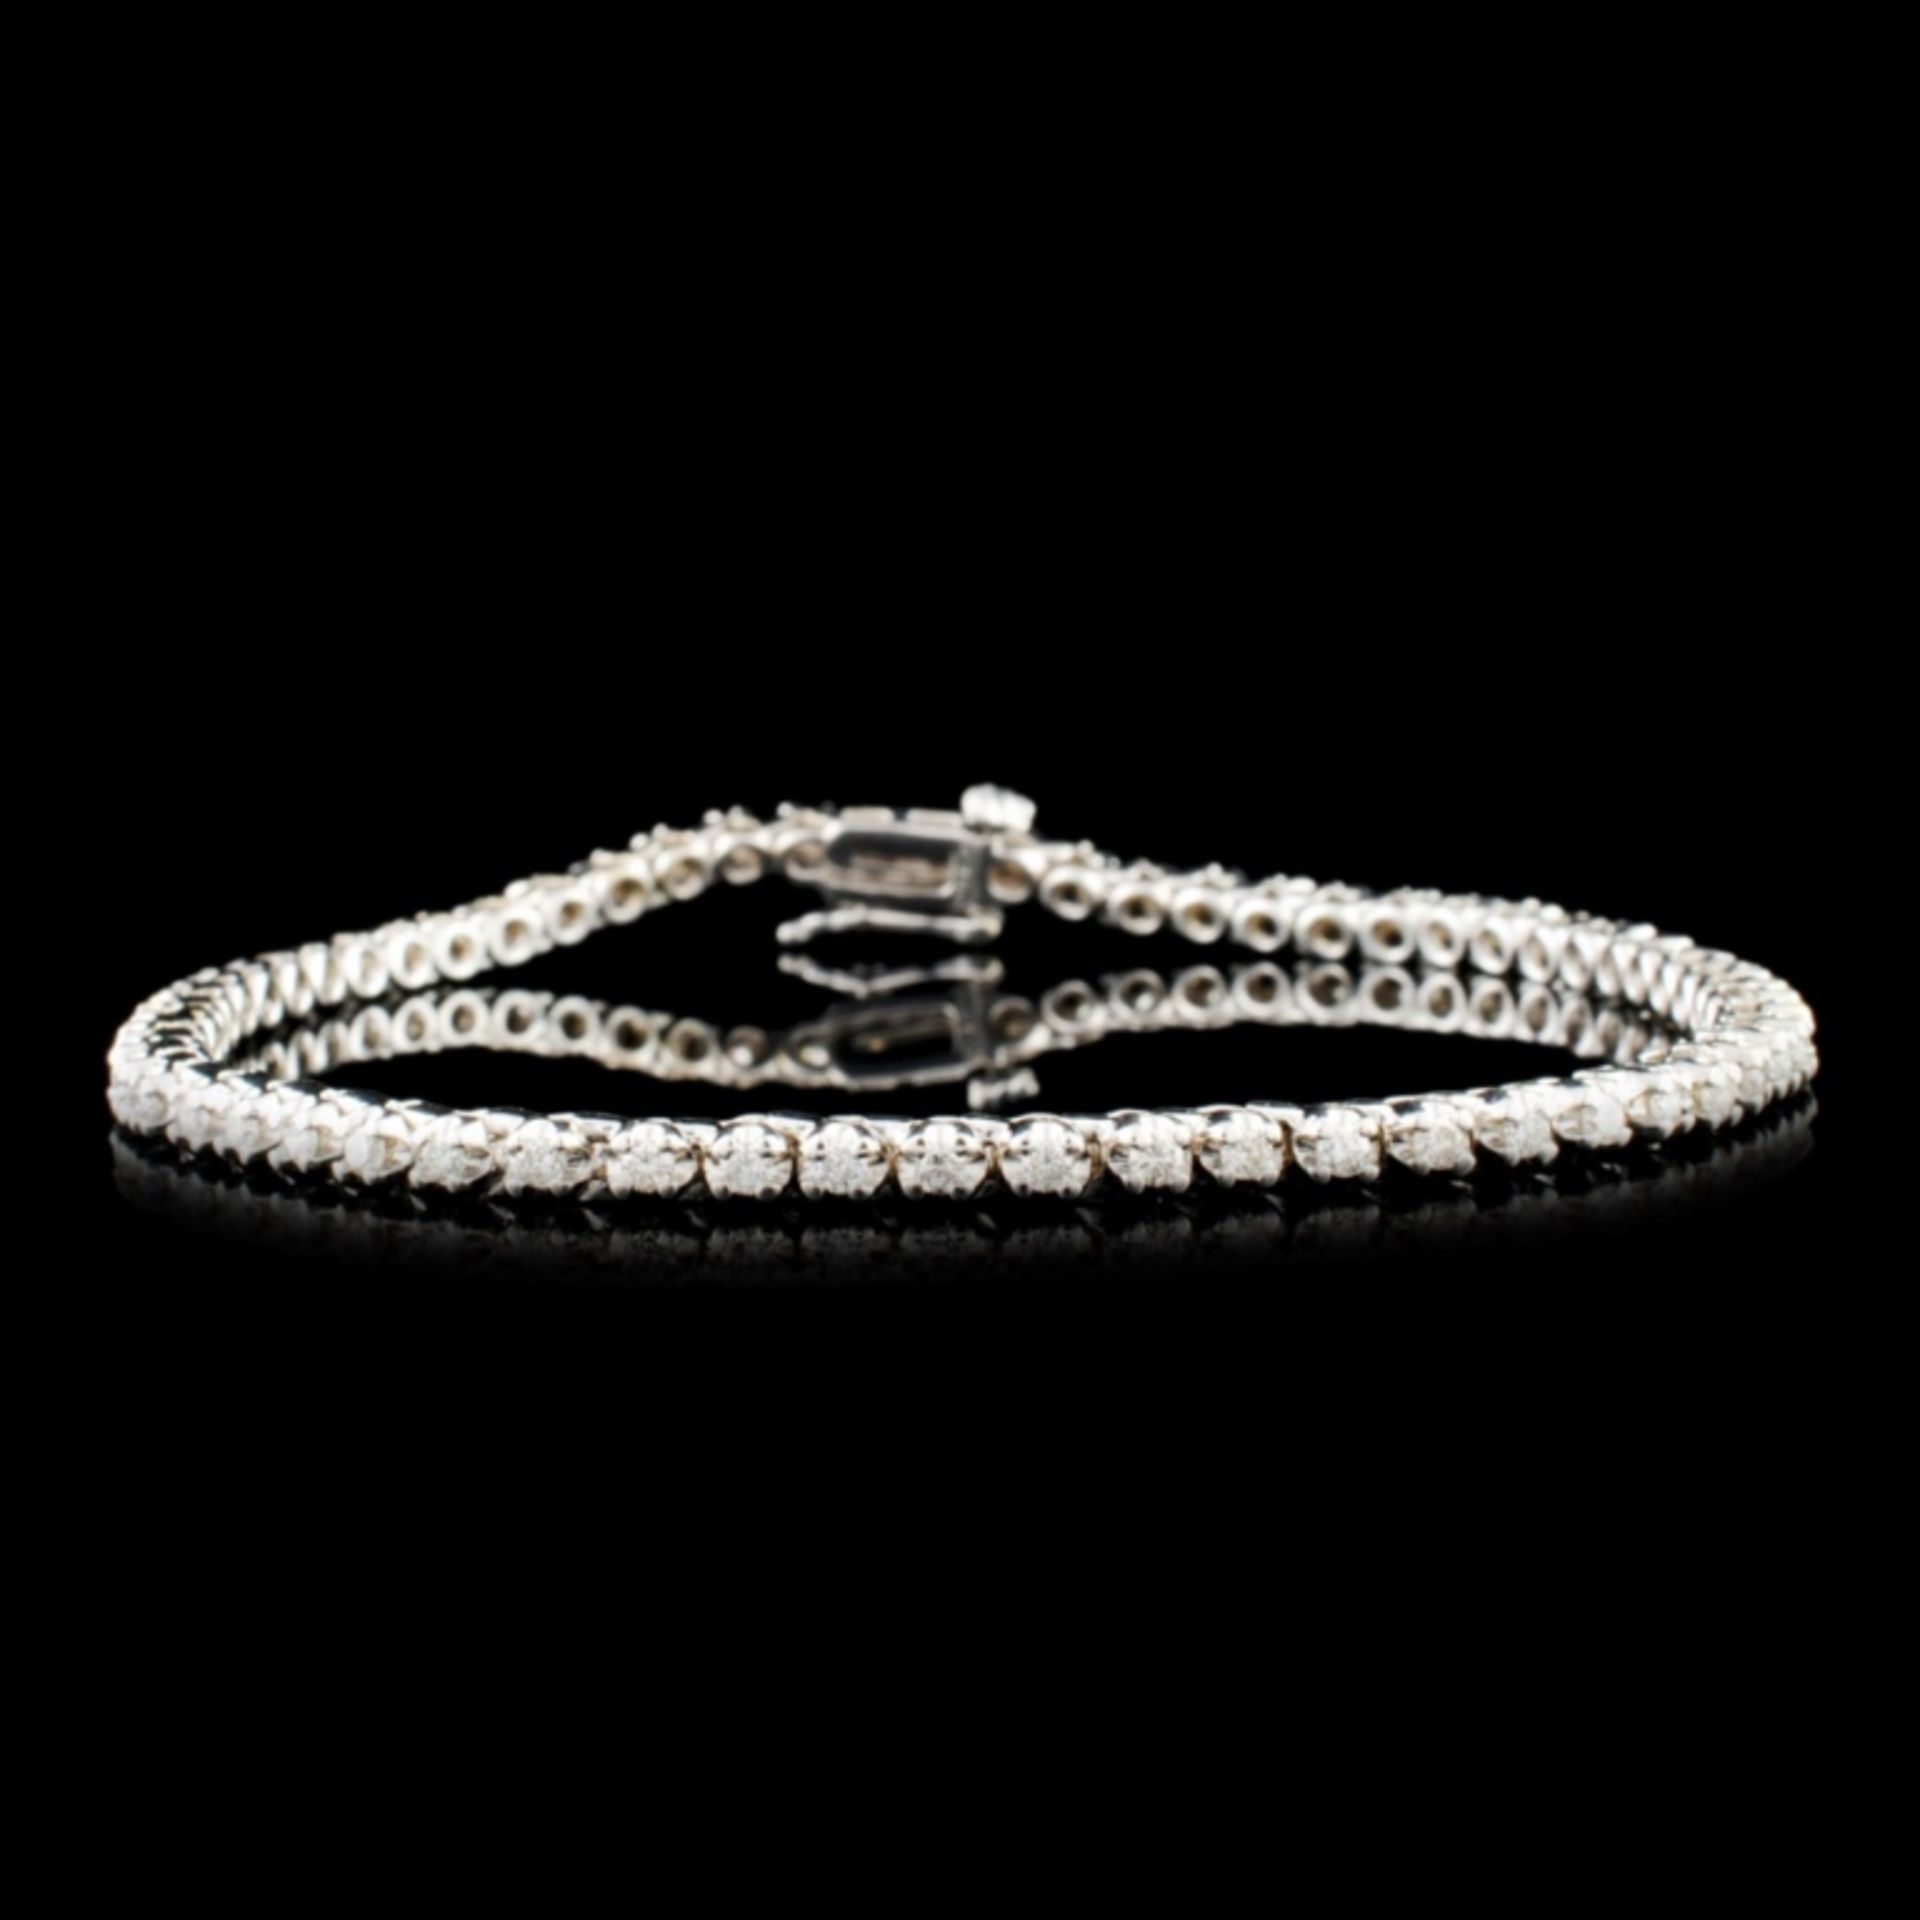 14K Gold 0.44ctw Diamond Bracelet